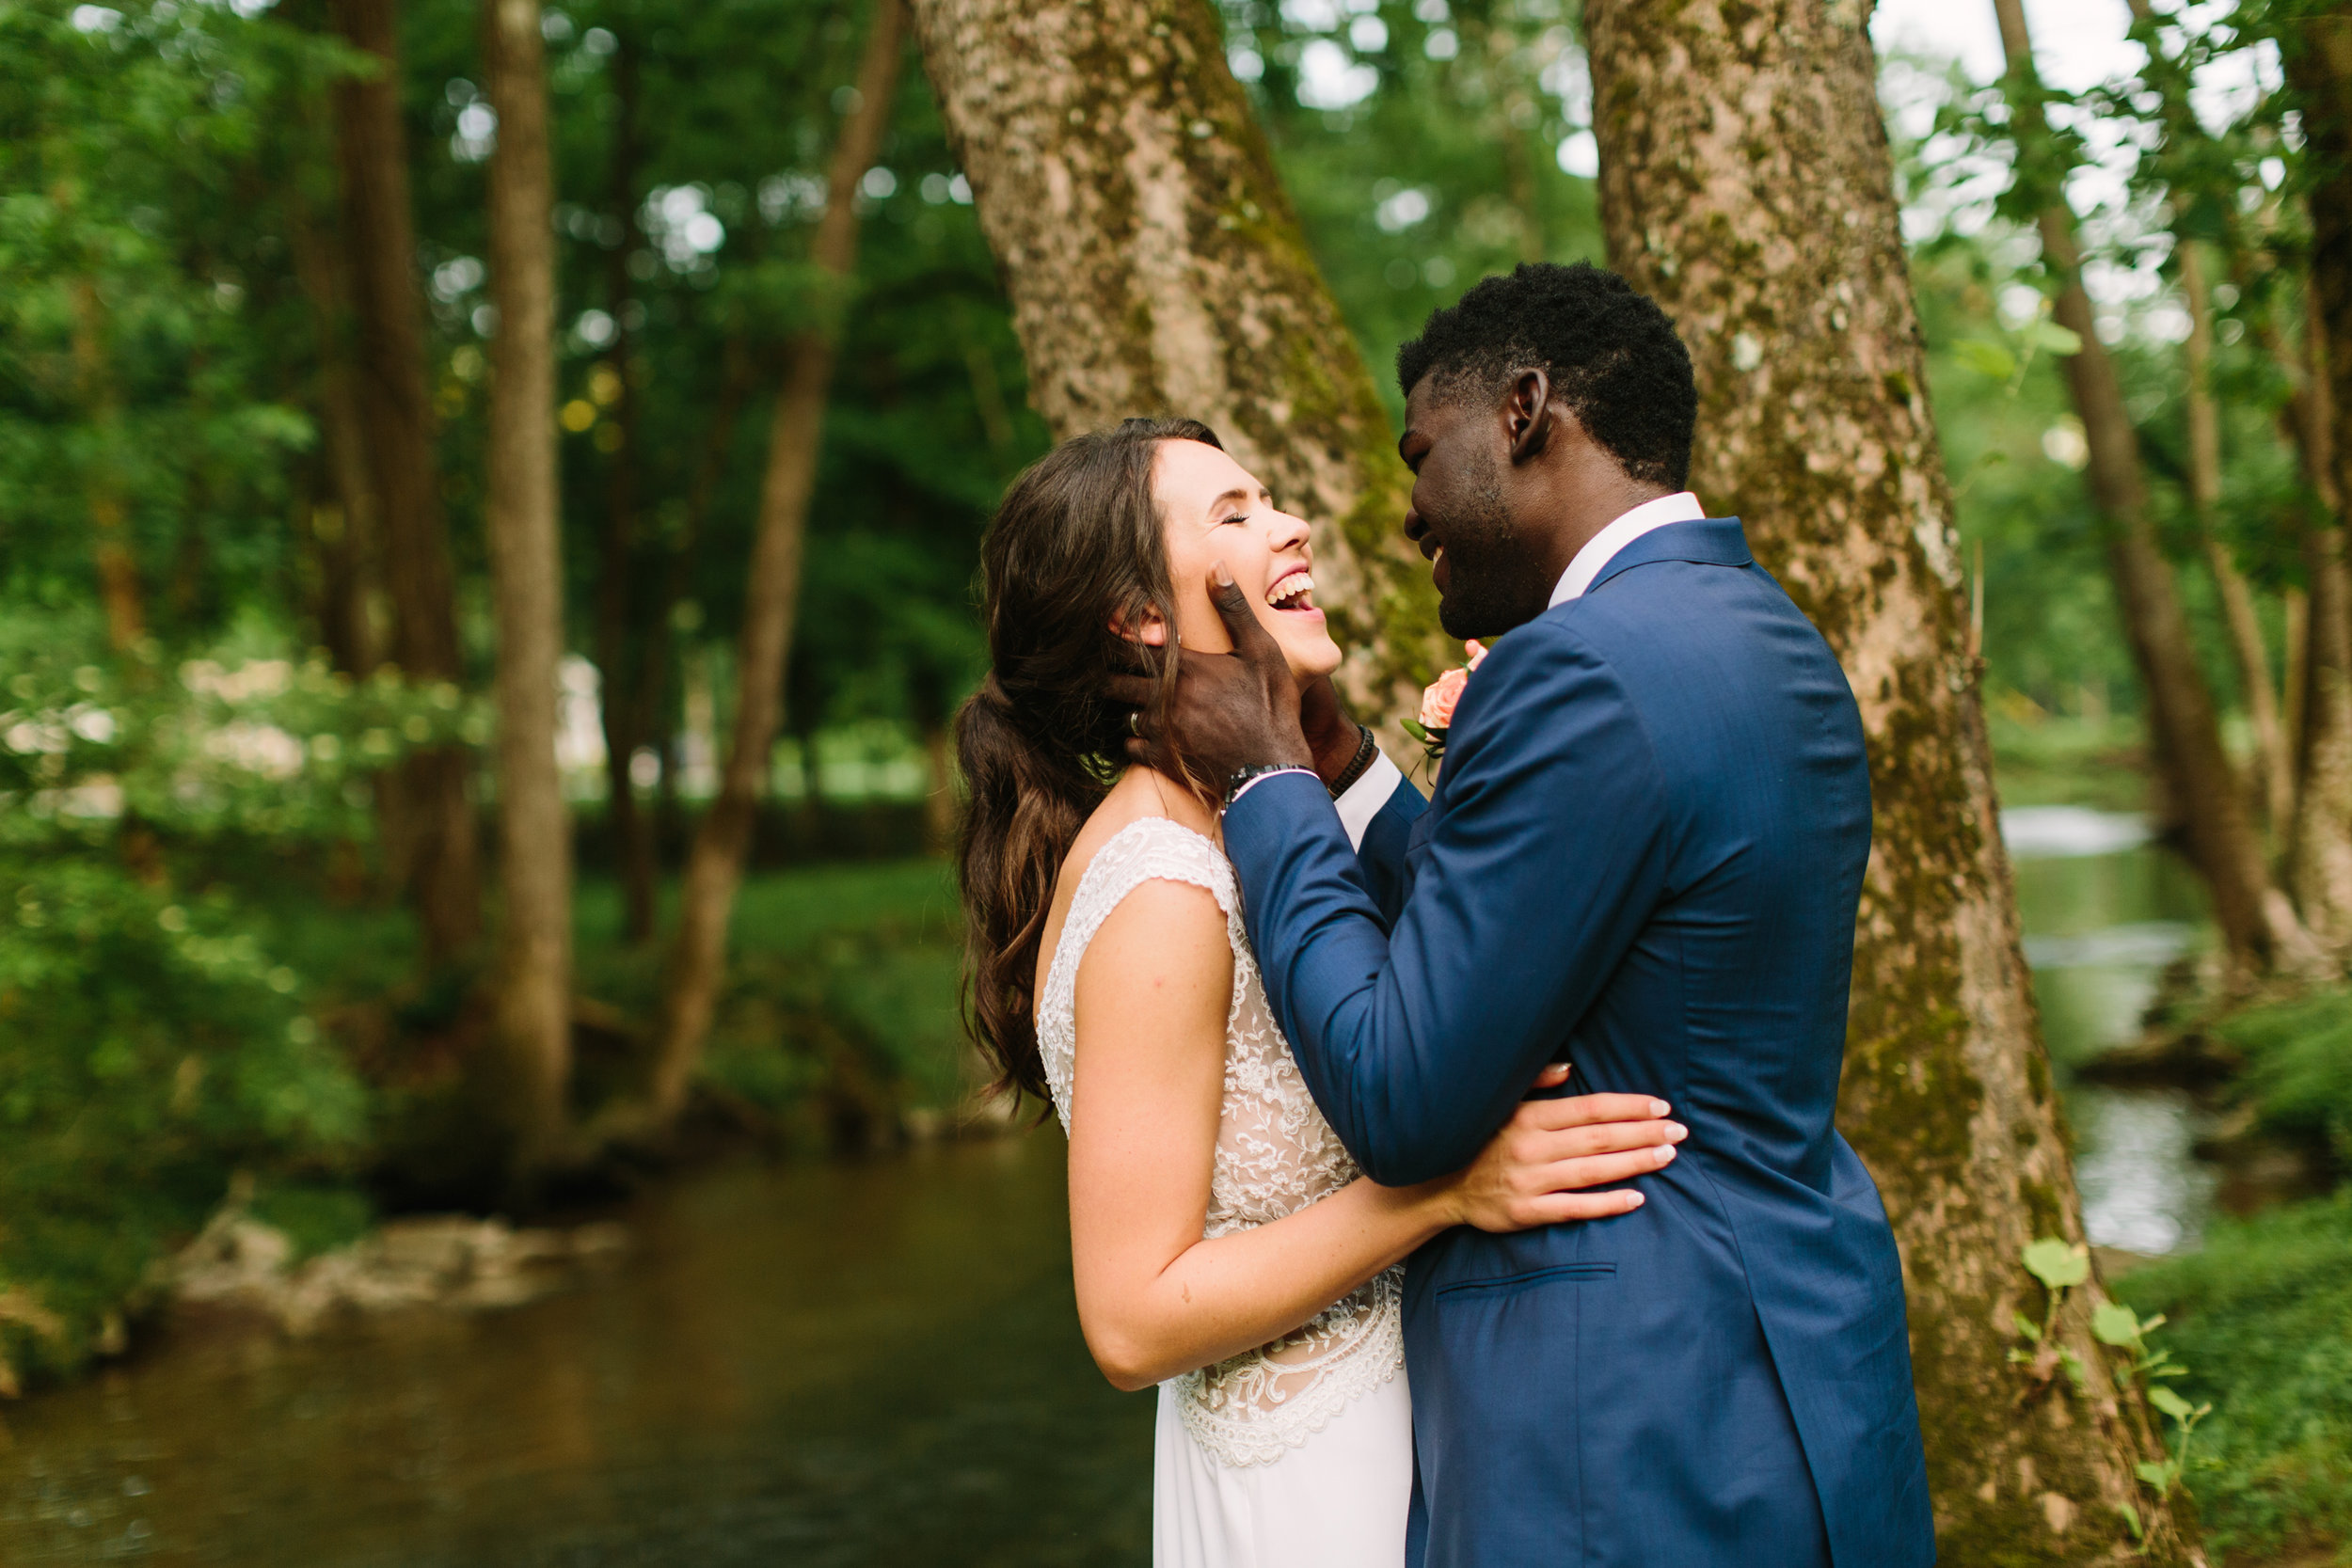 lOUISVILLE WEDDING AT THE JEFFERSONIAN